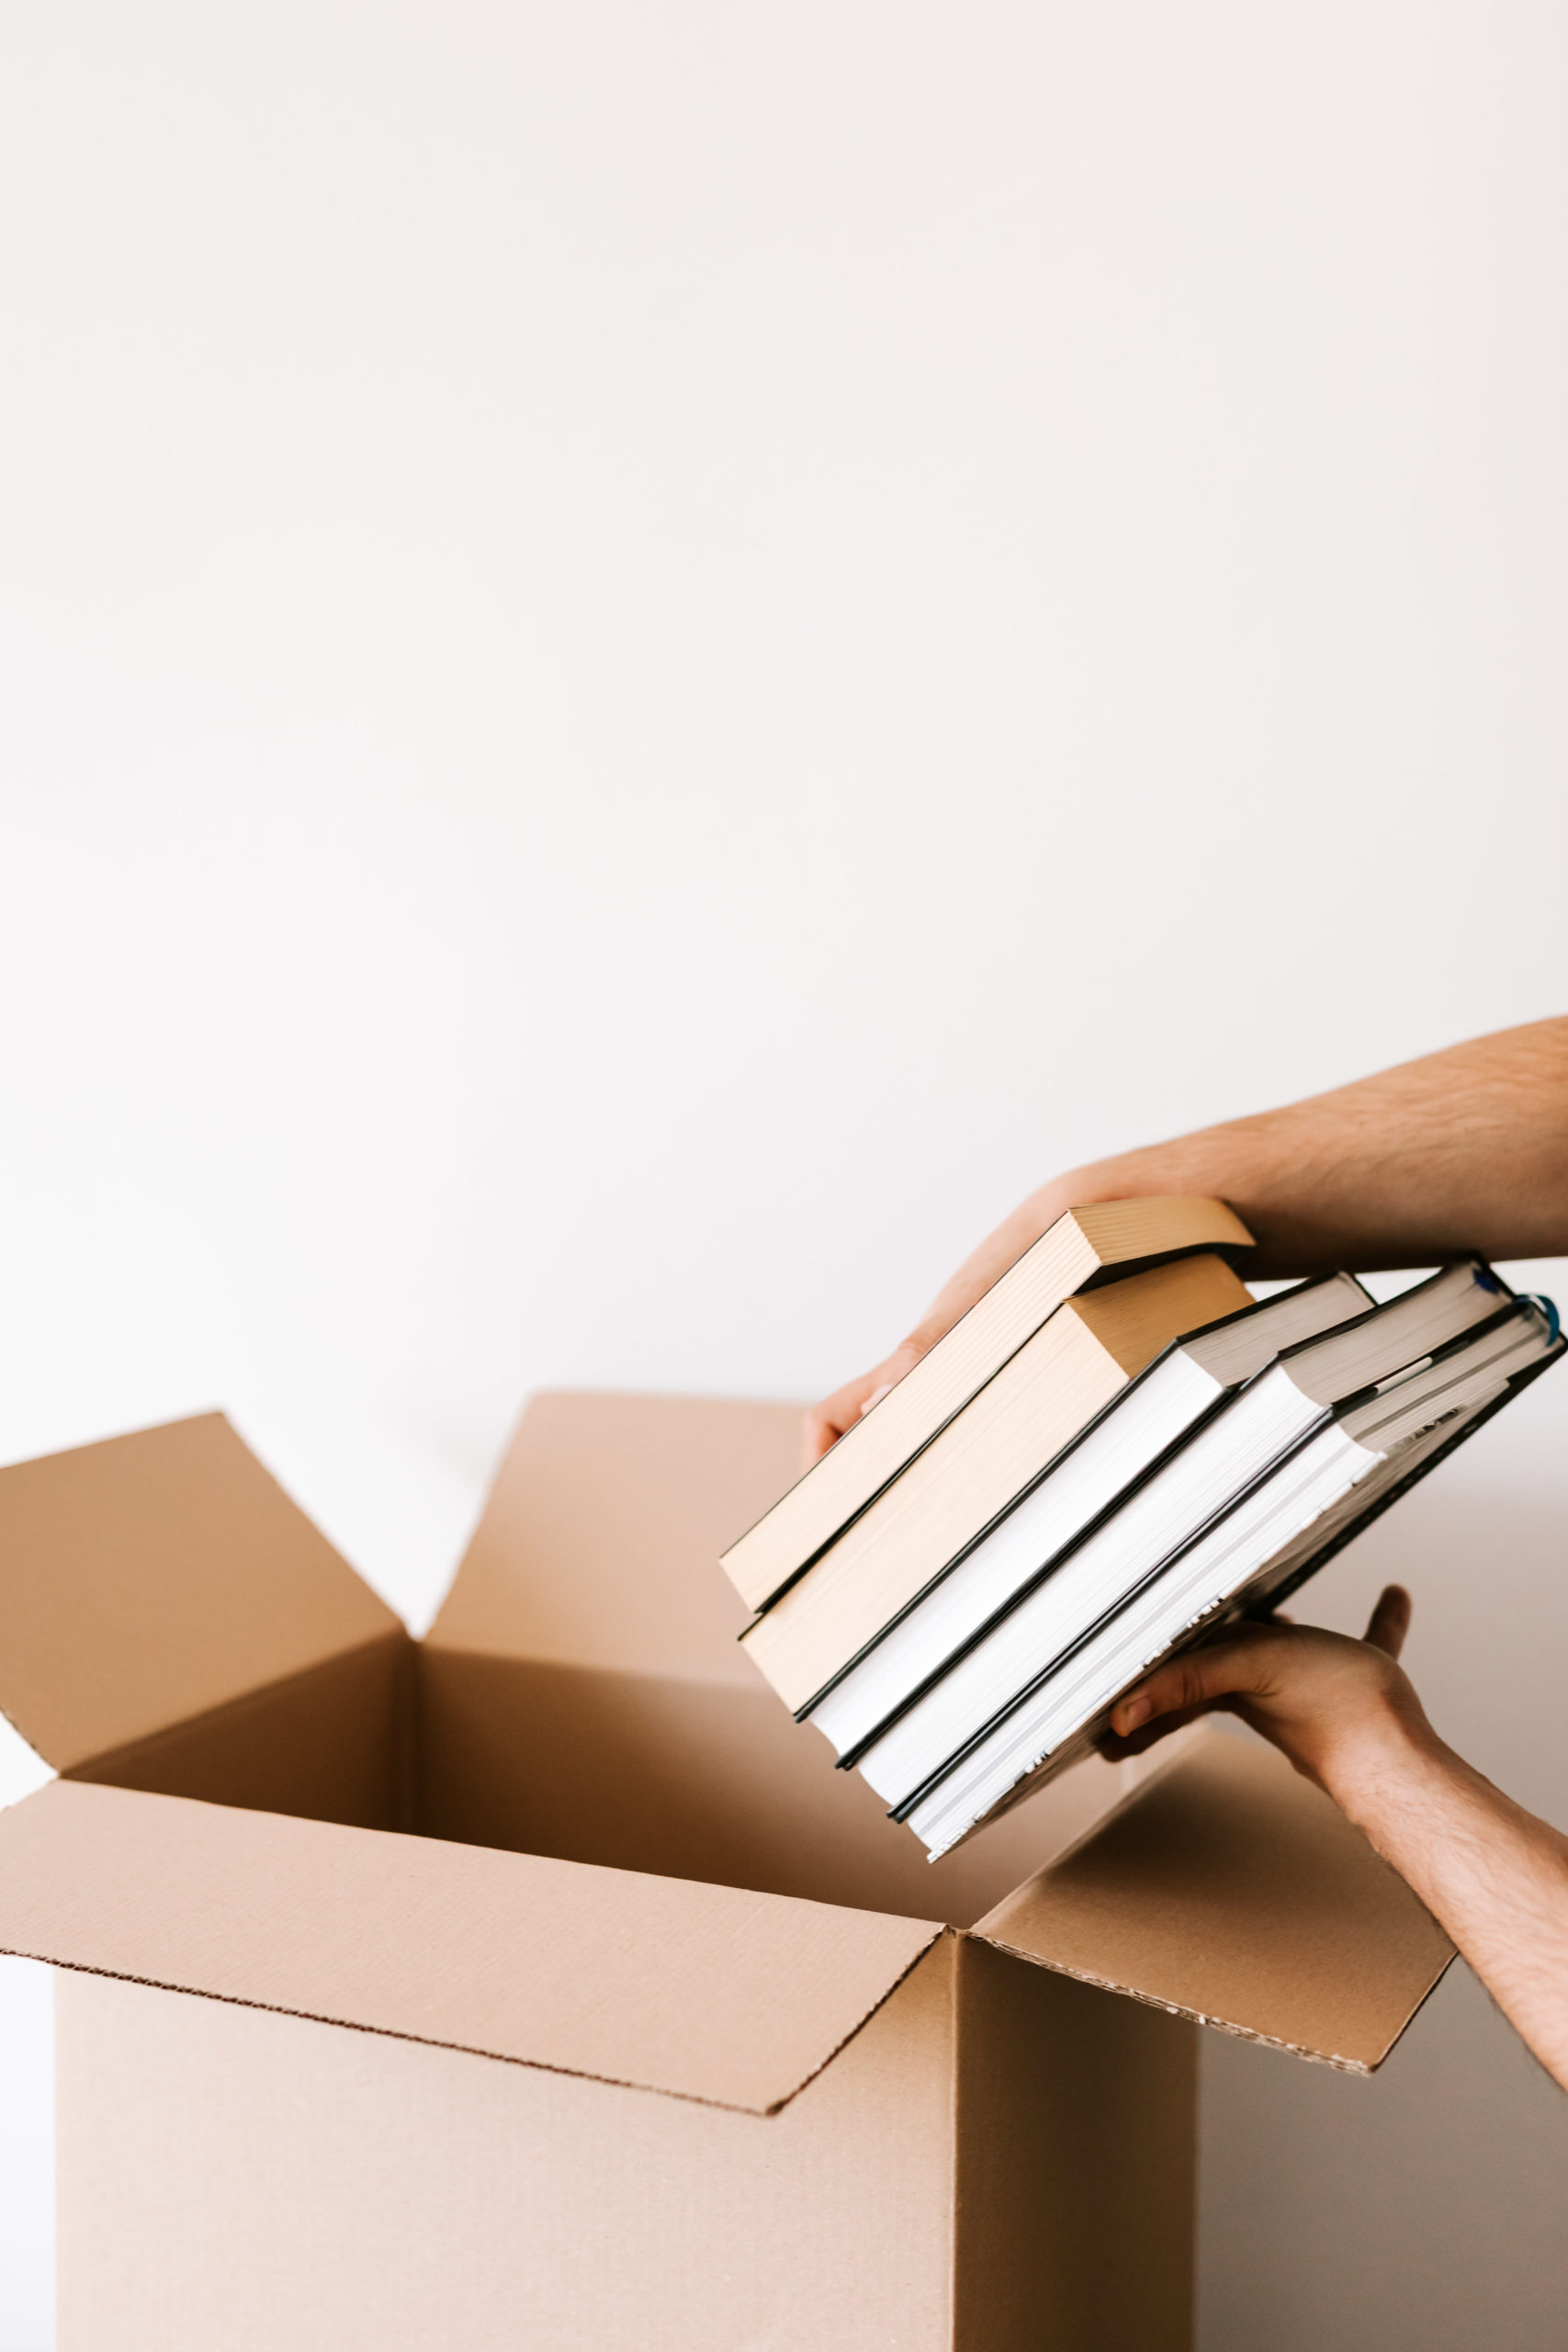 crop person packing stack of books in carton box 4498137 scaled